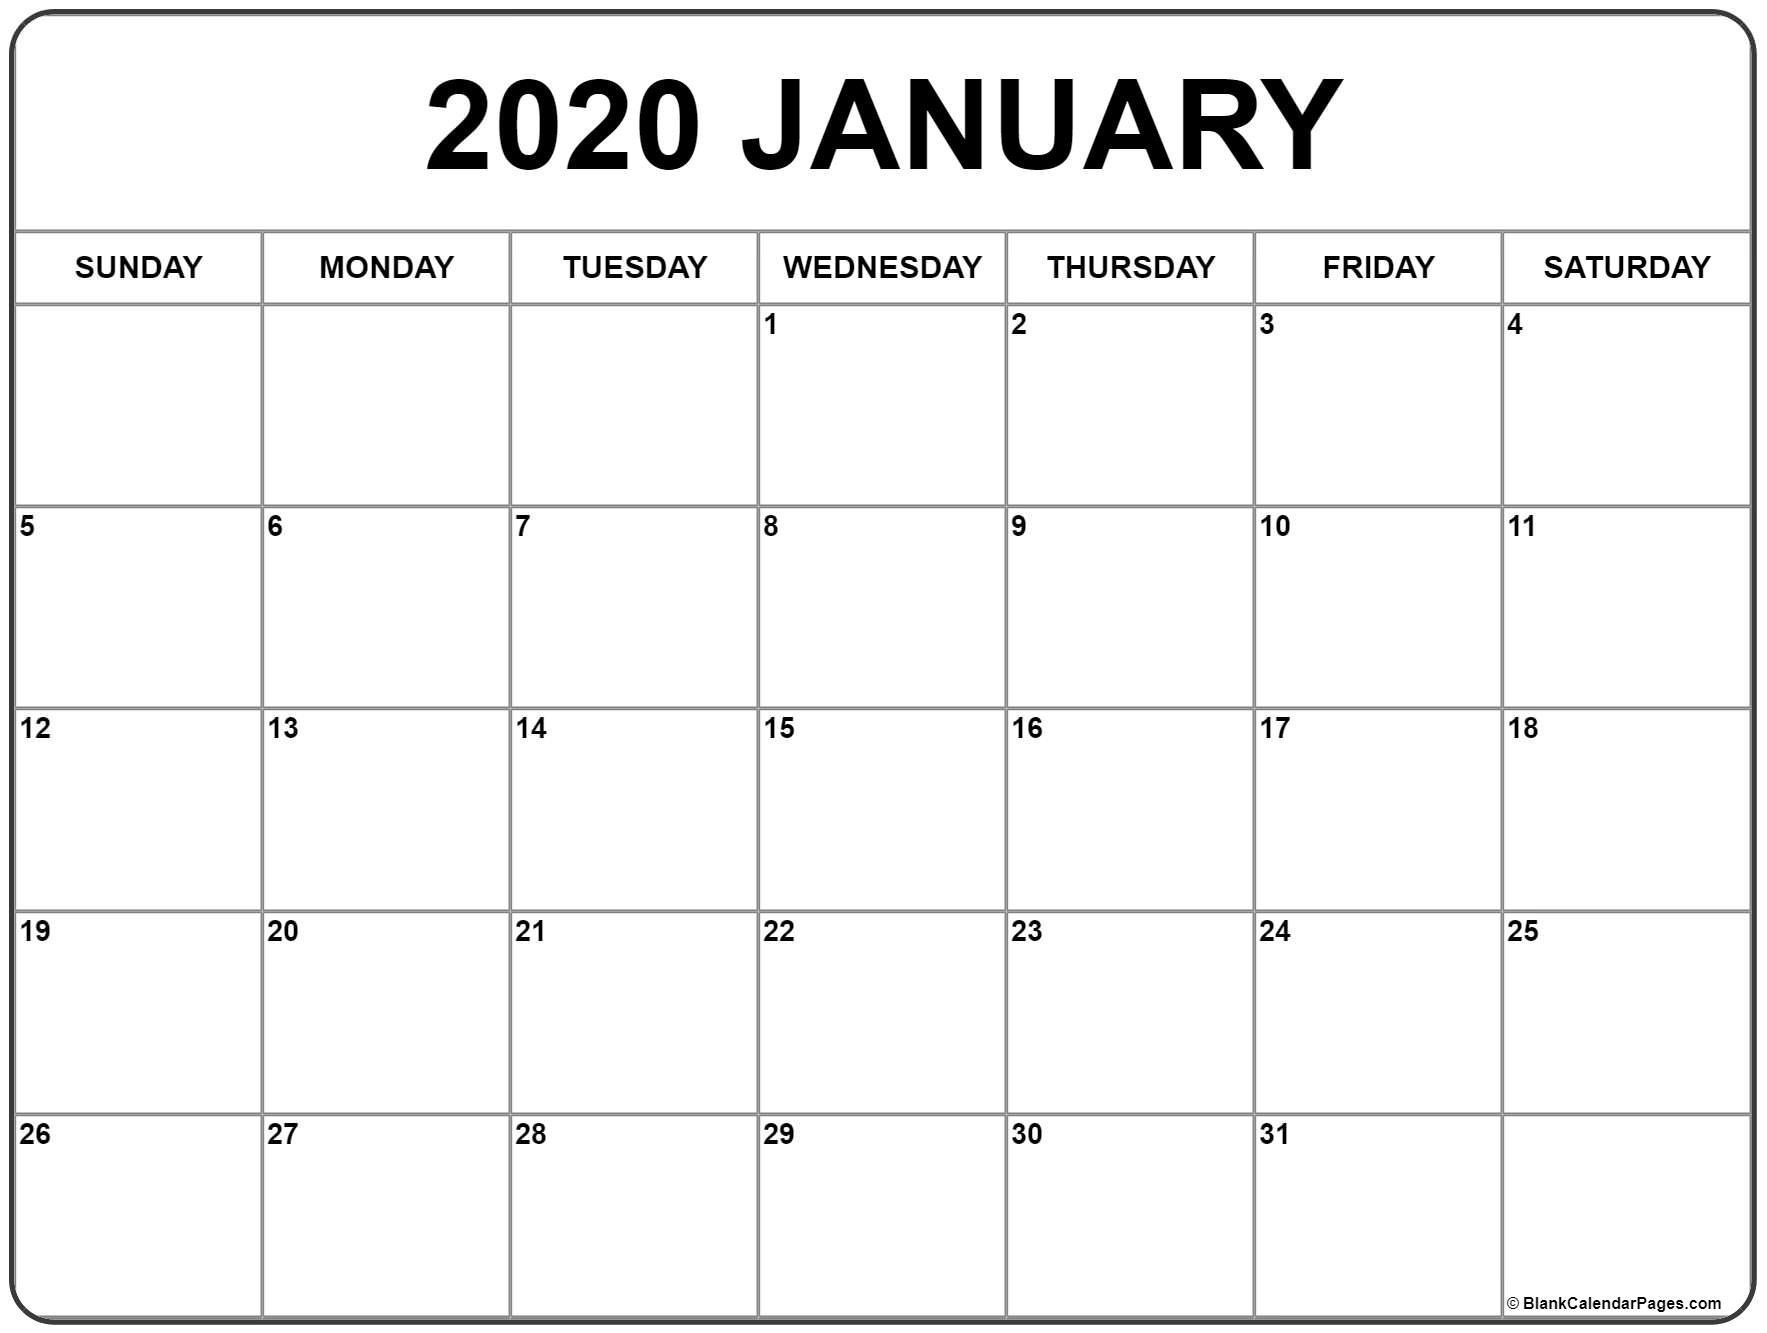 January 2020 Calendar | Free Printable Monthly Calendars-Printable Monthly Calendar Monday Start